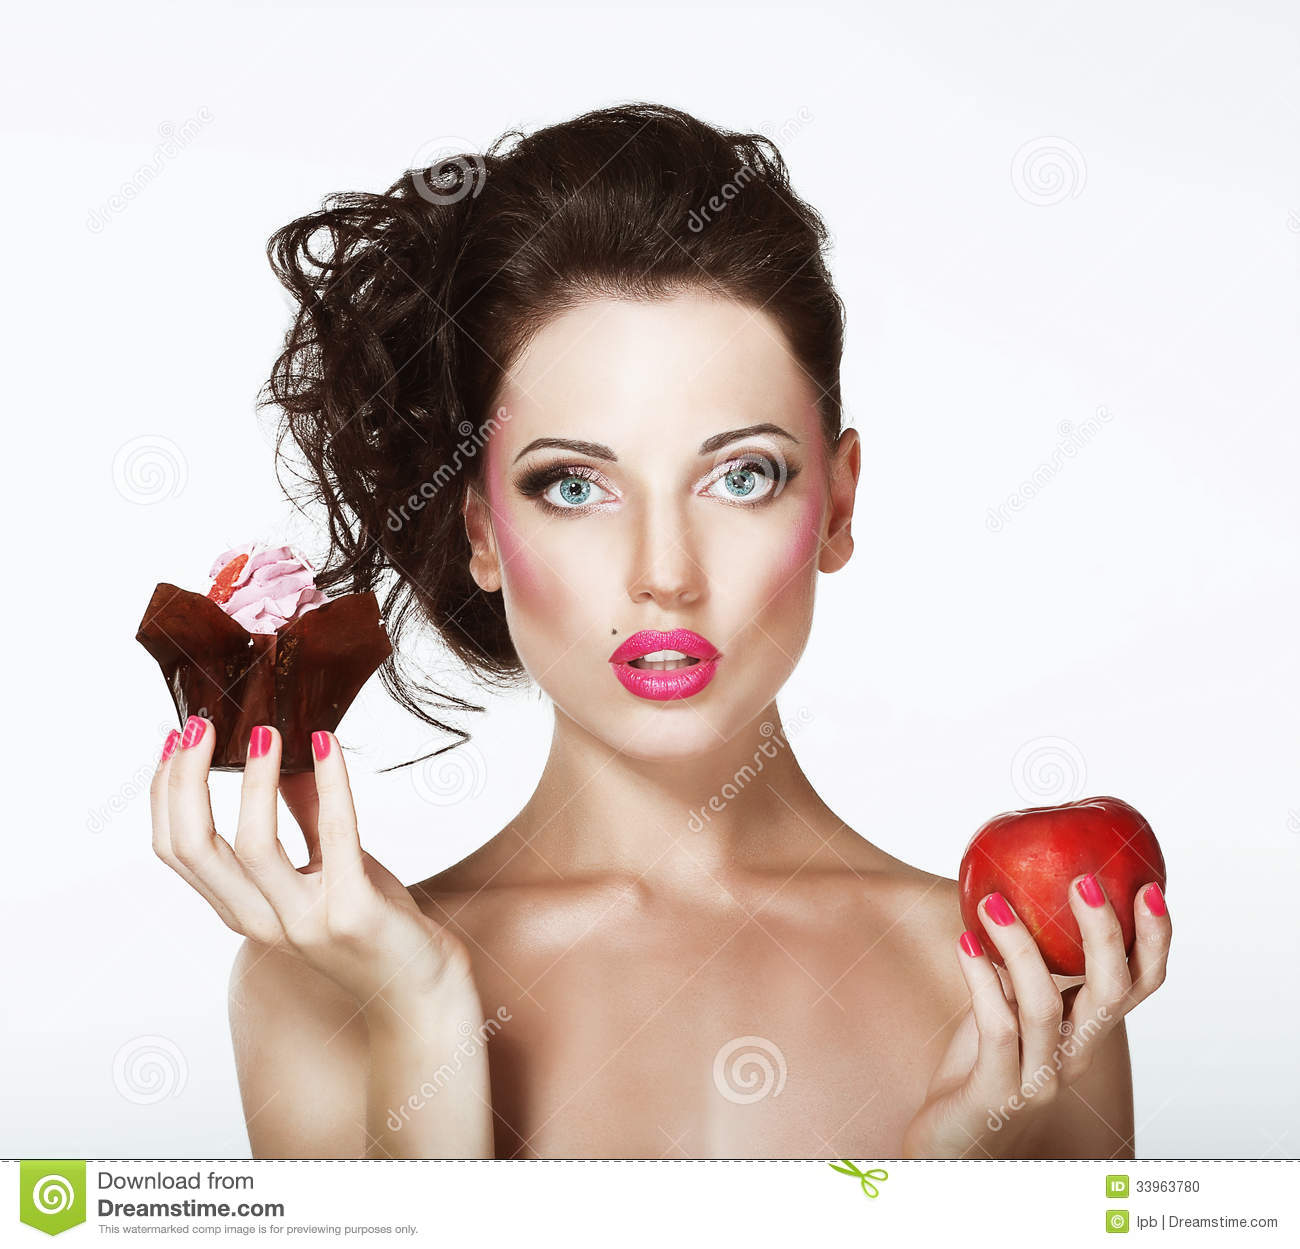 Download Dilemma. Diet. Undecided Woman With Apple And Cupcake Stock Photo - Image of apple, calories: 33963780